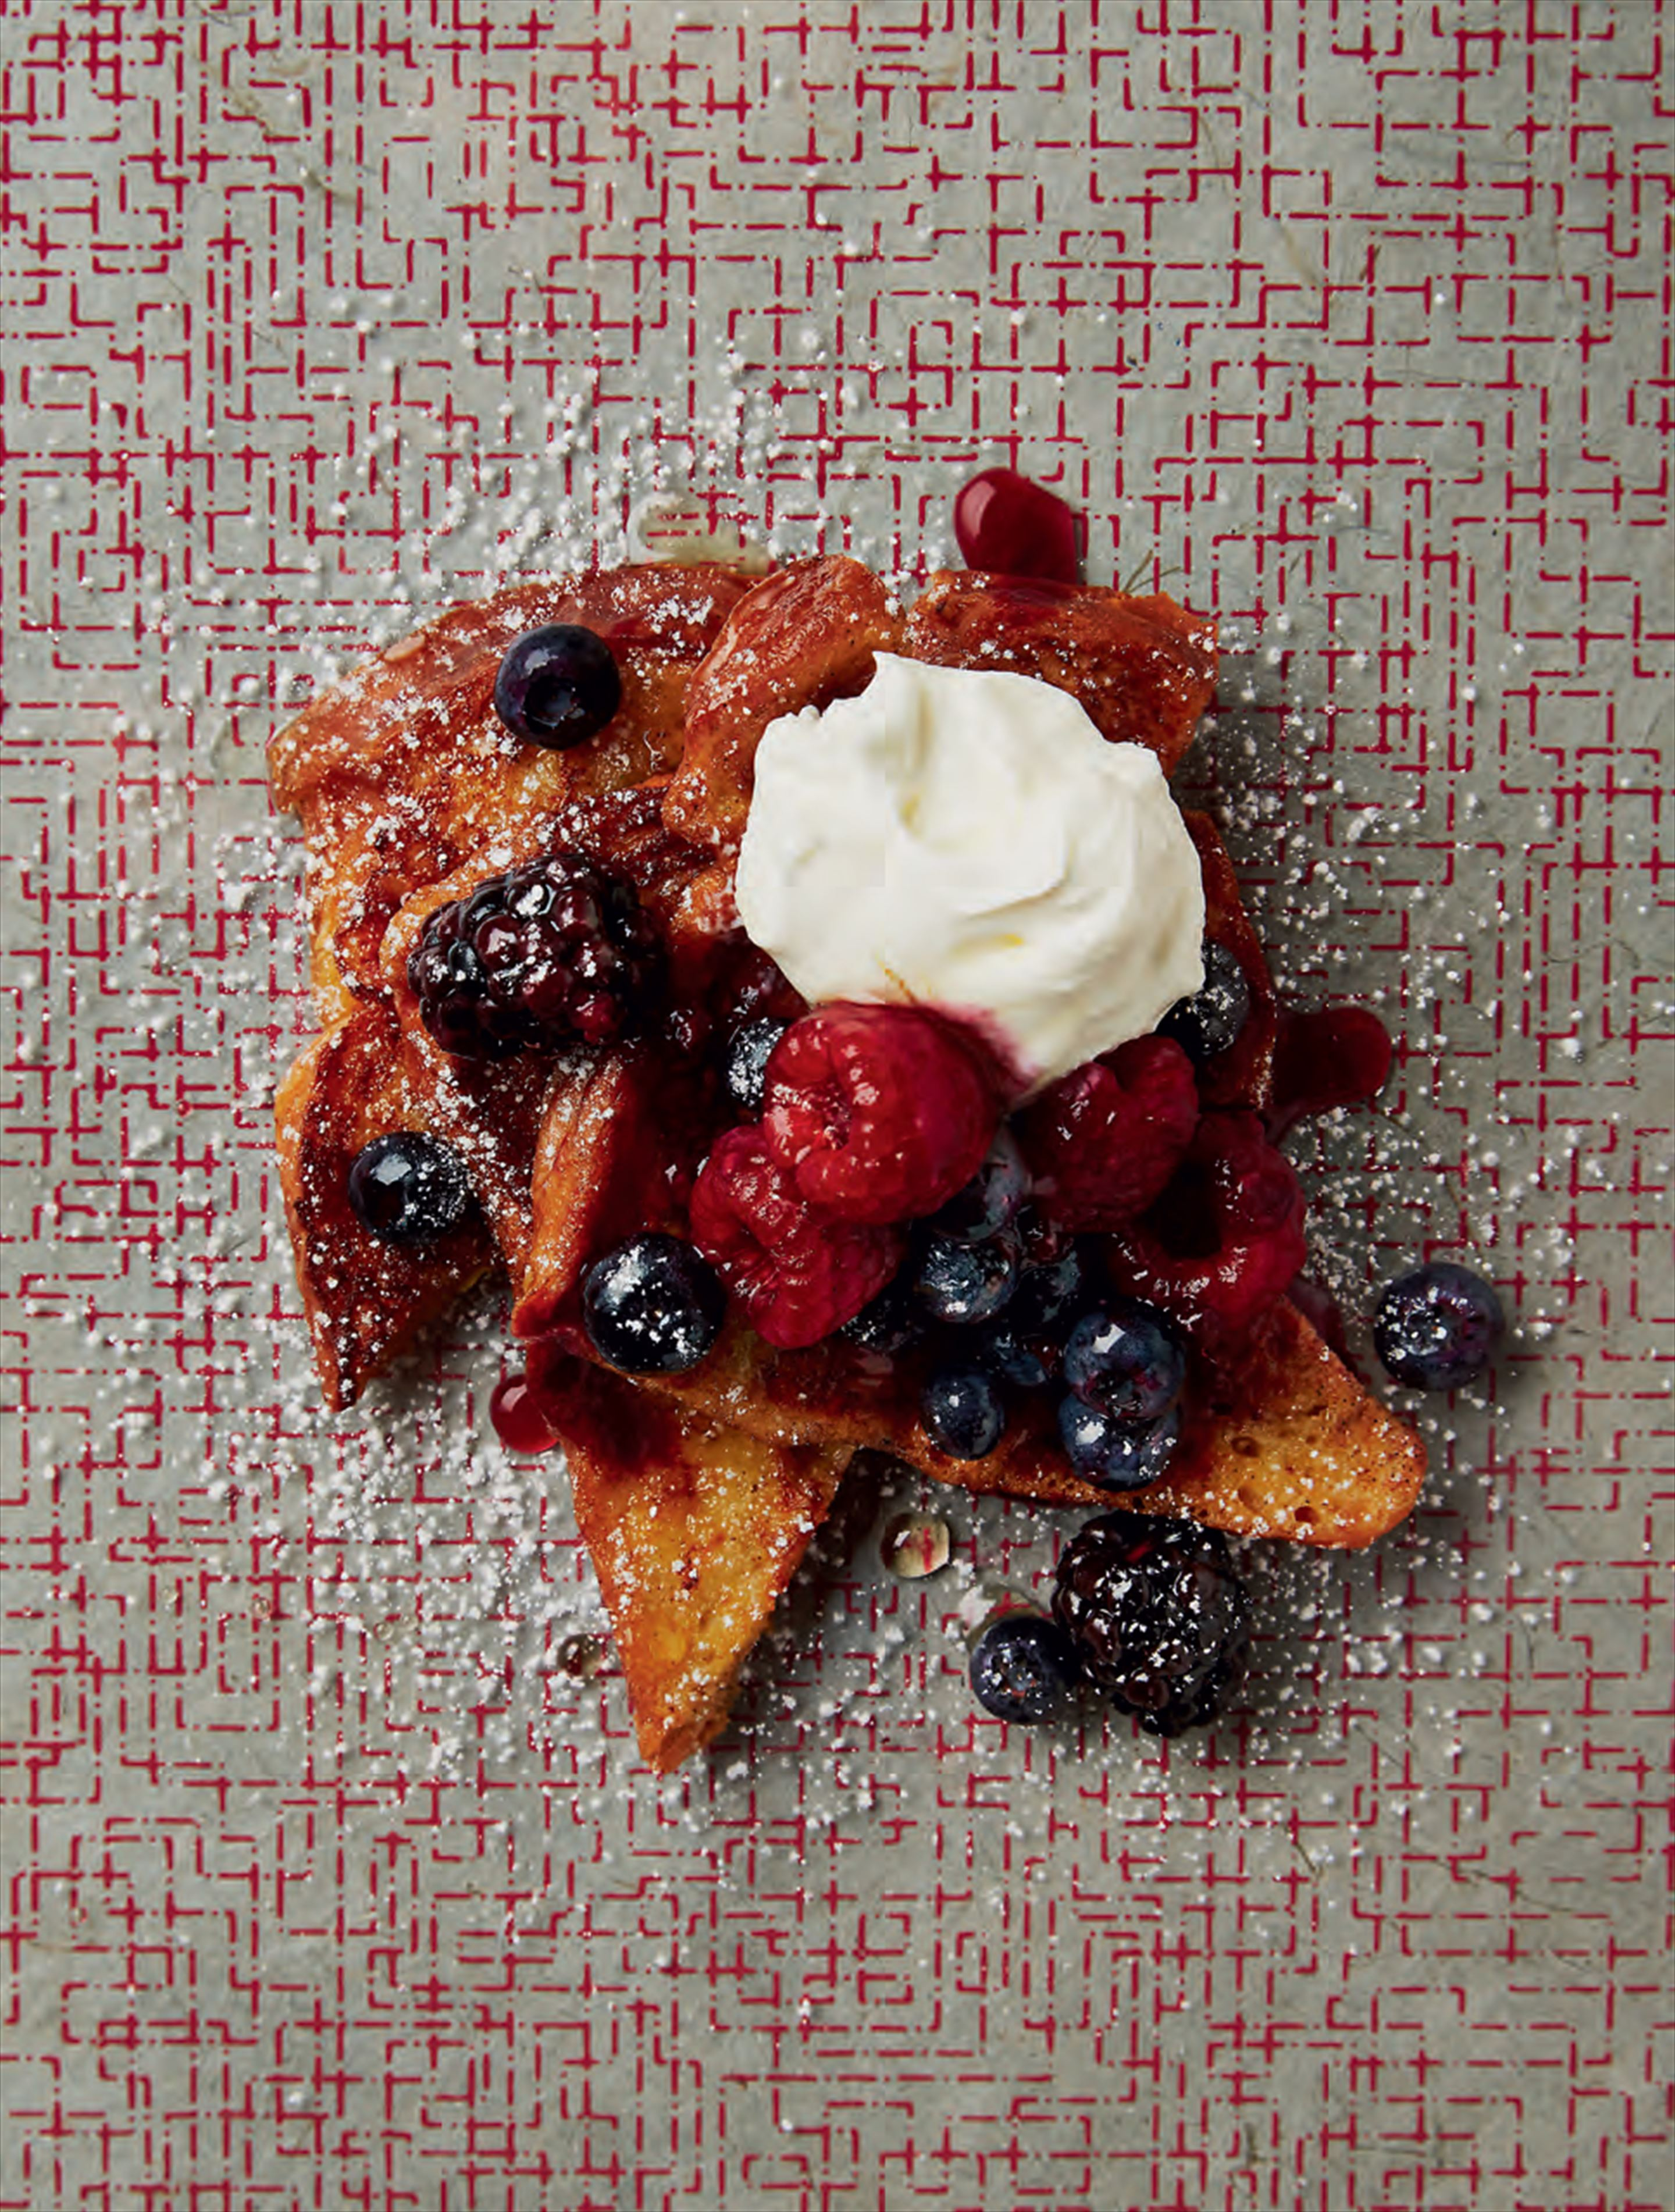 French toast berries & mascarpone